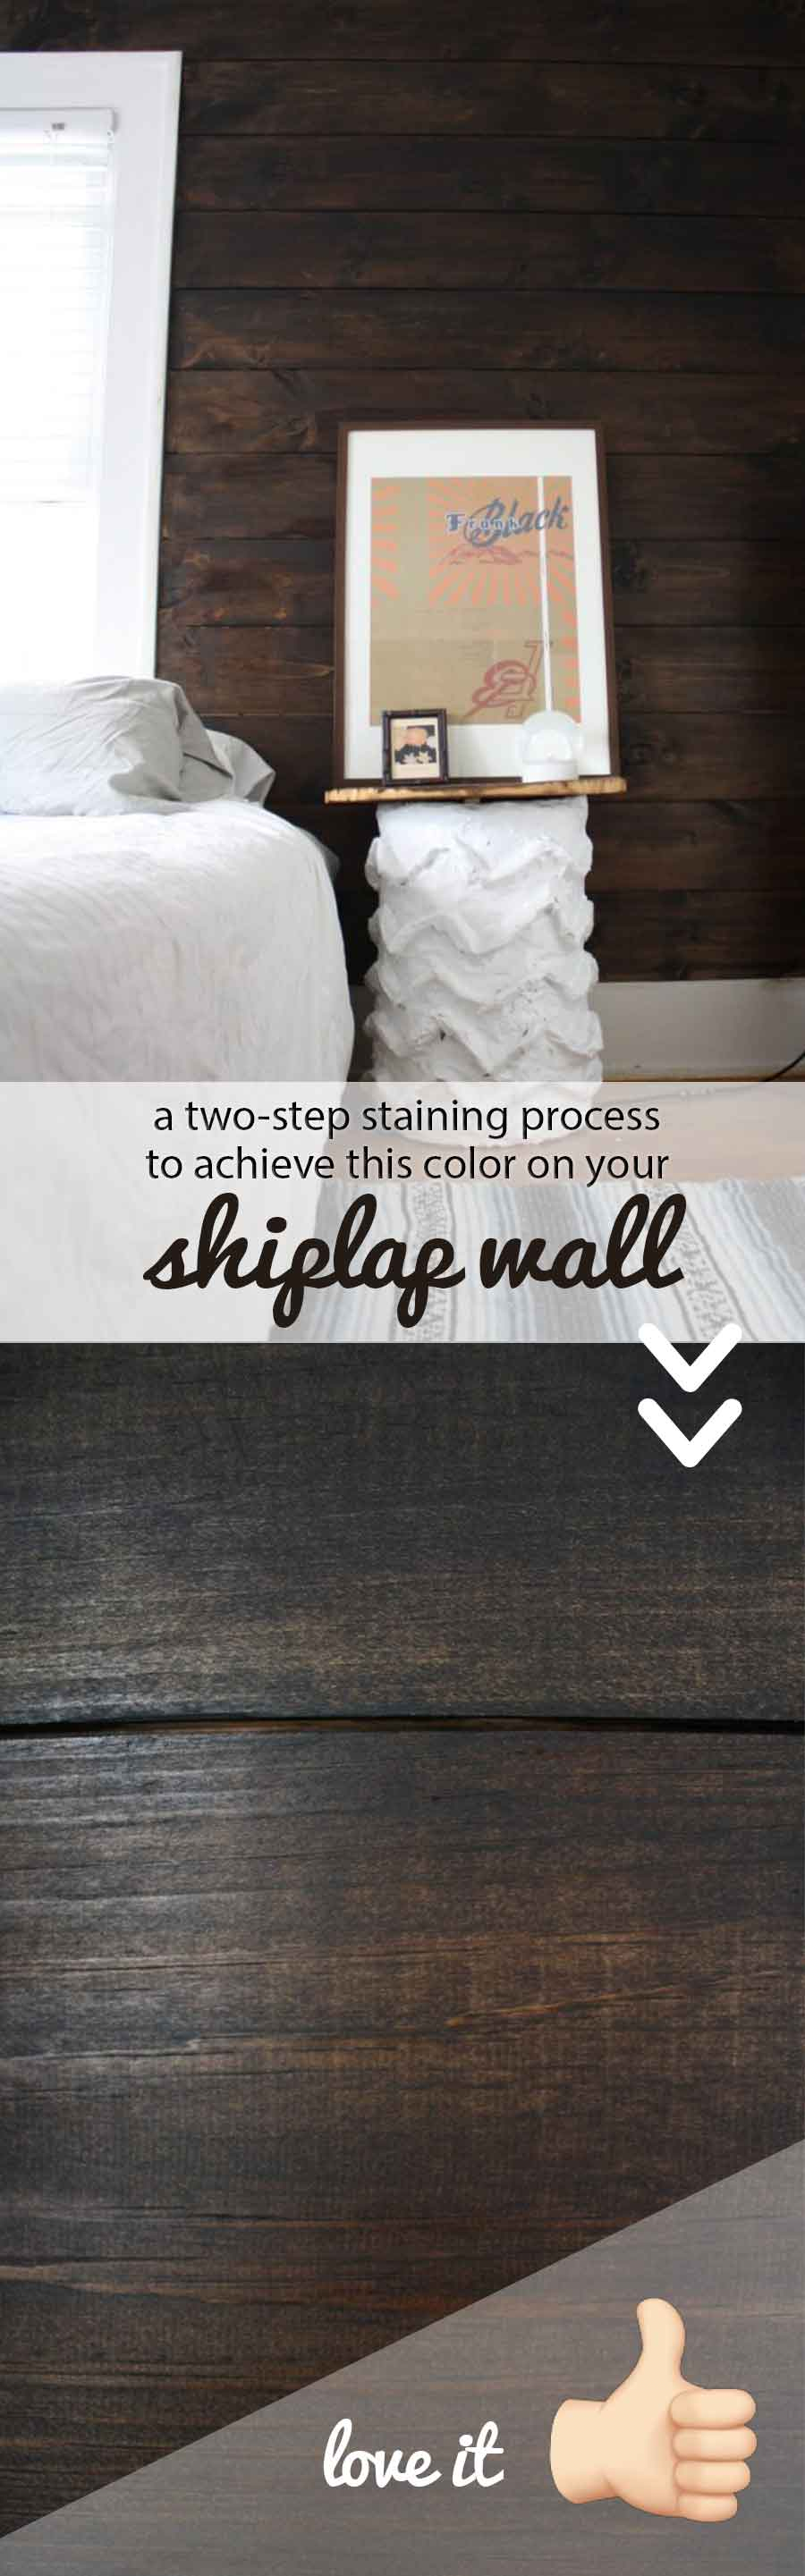 A two-step process to get a rich, dark mocha stain on shiplap boards.